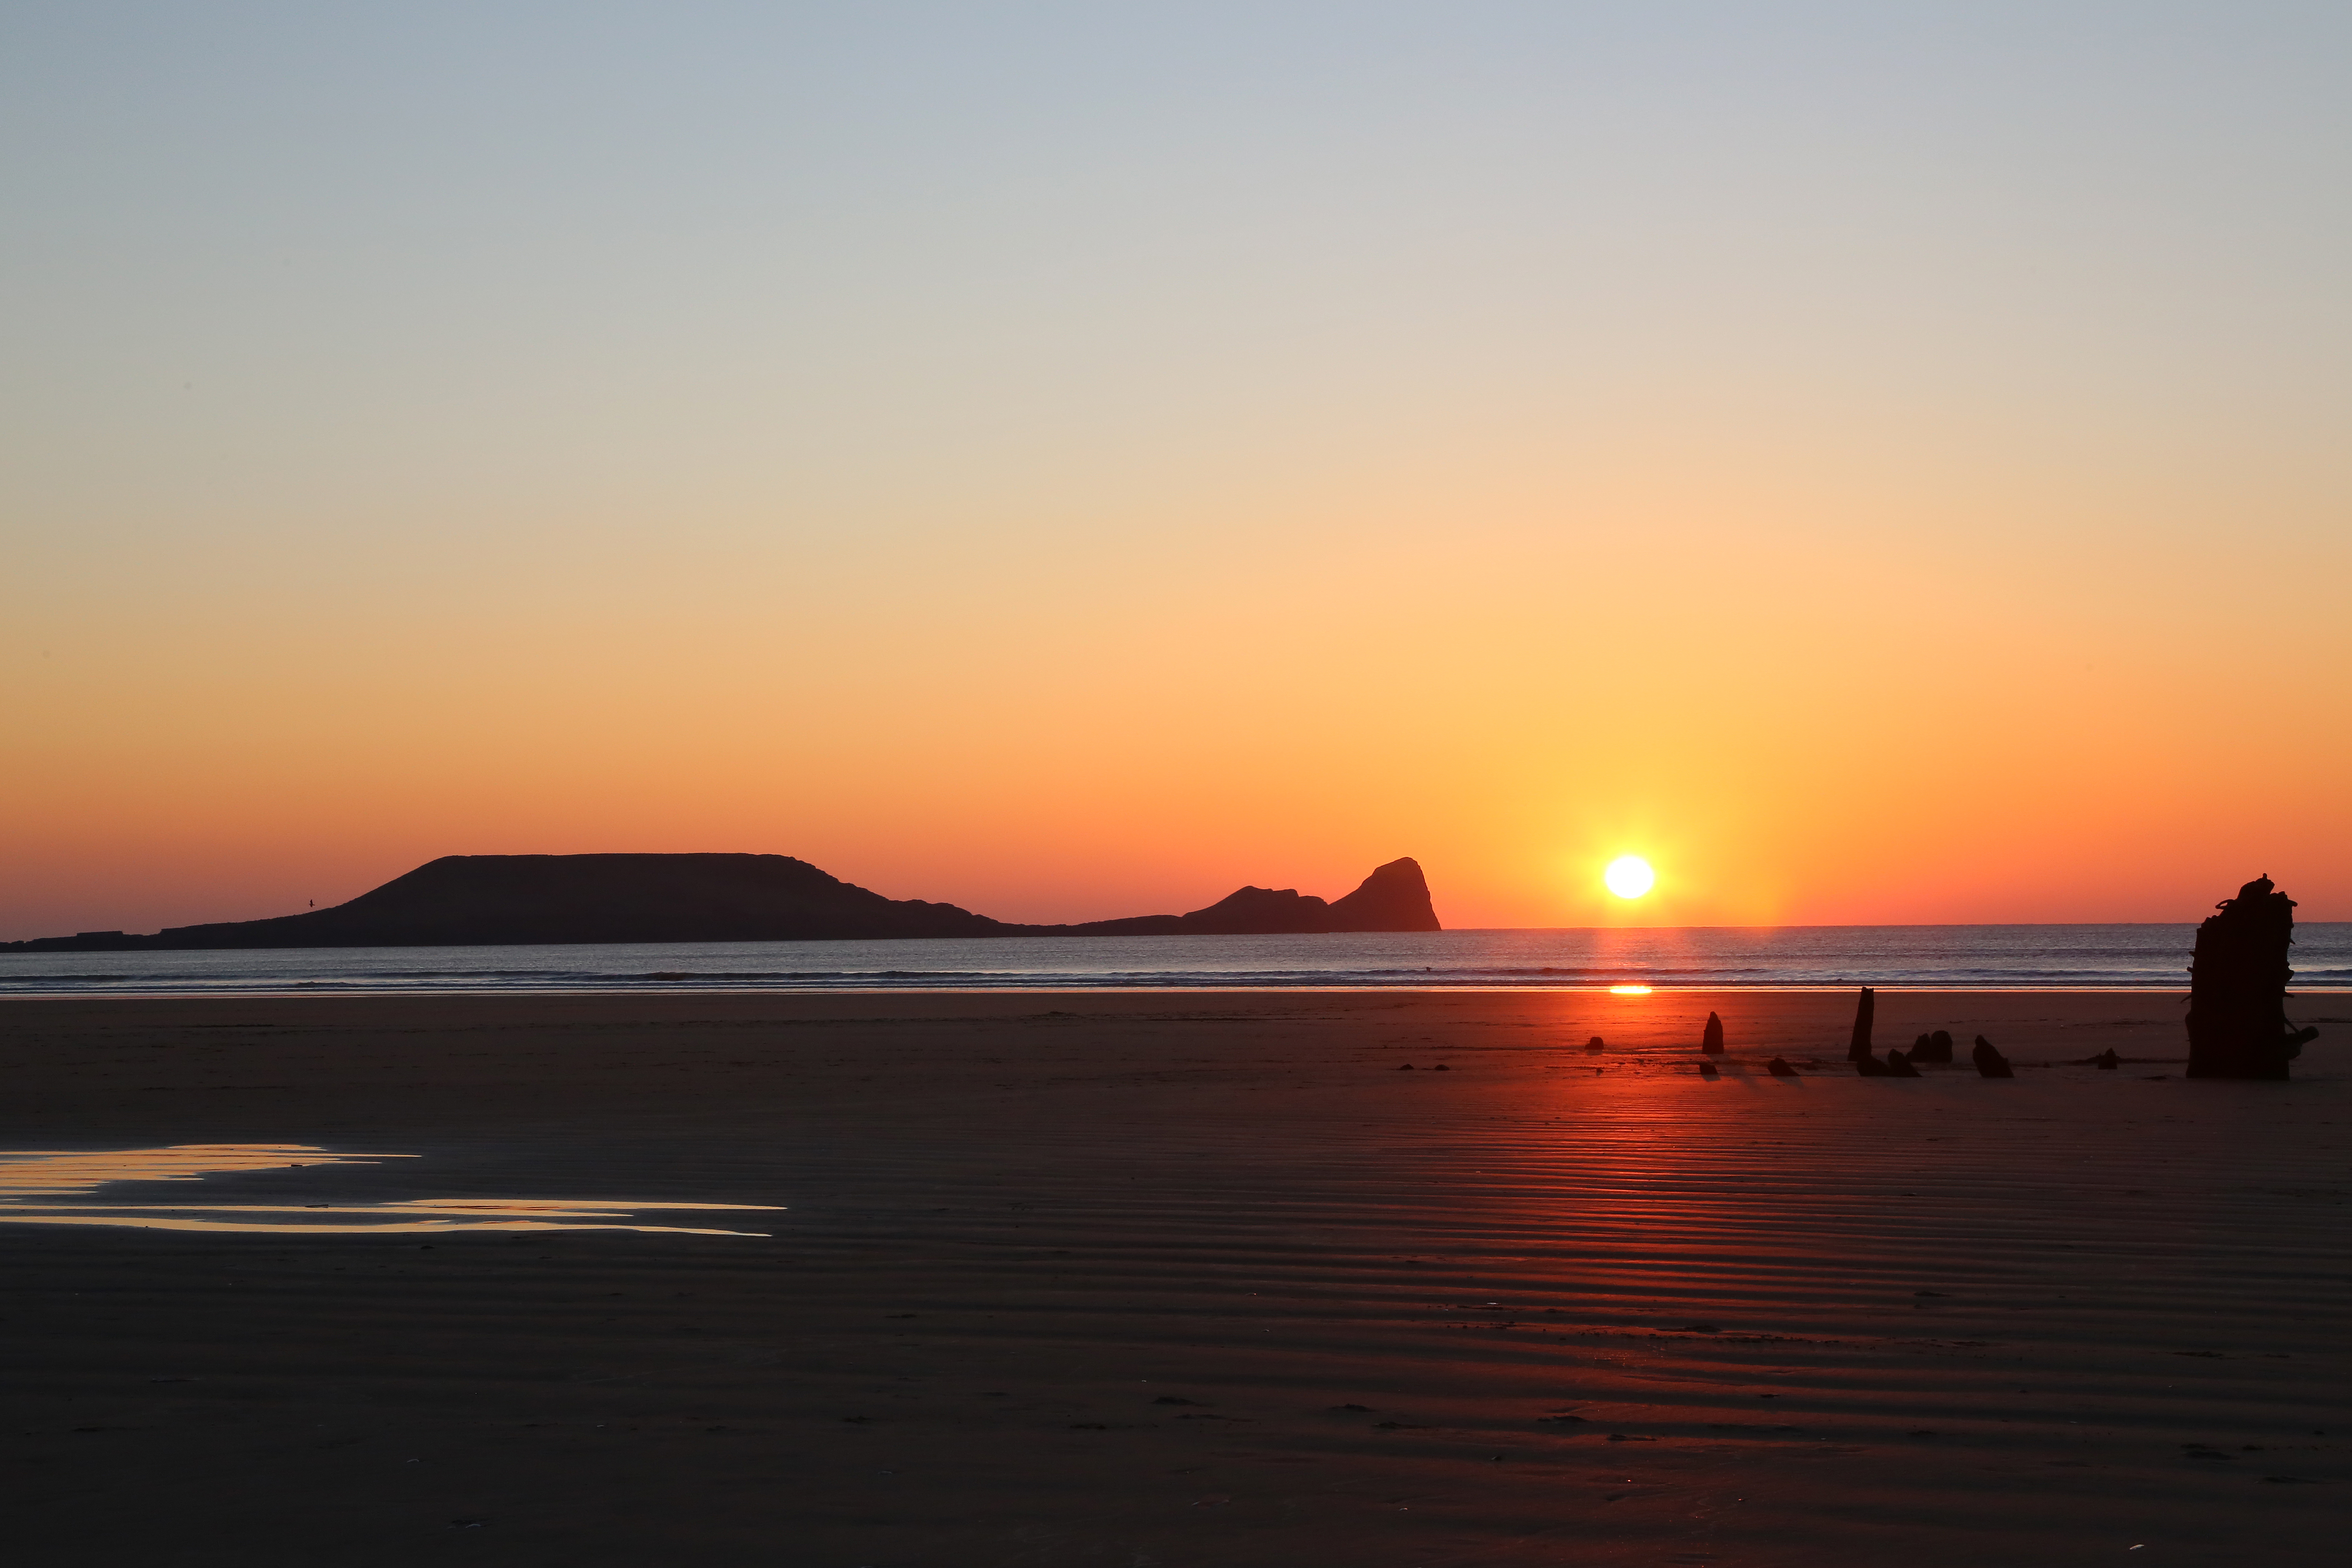 Sunset at Worm's Head, Gower